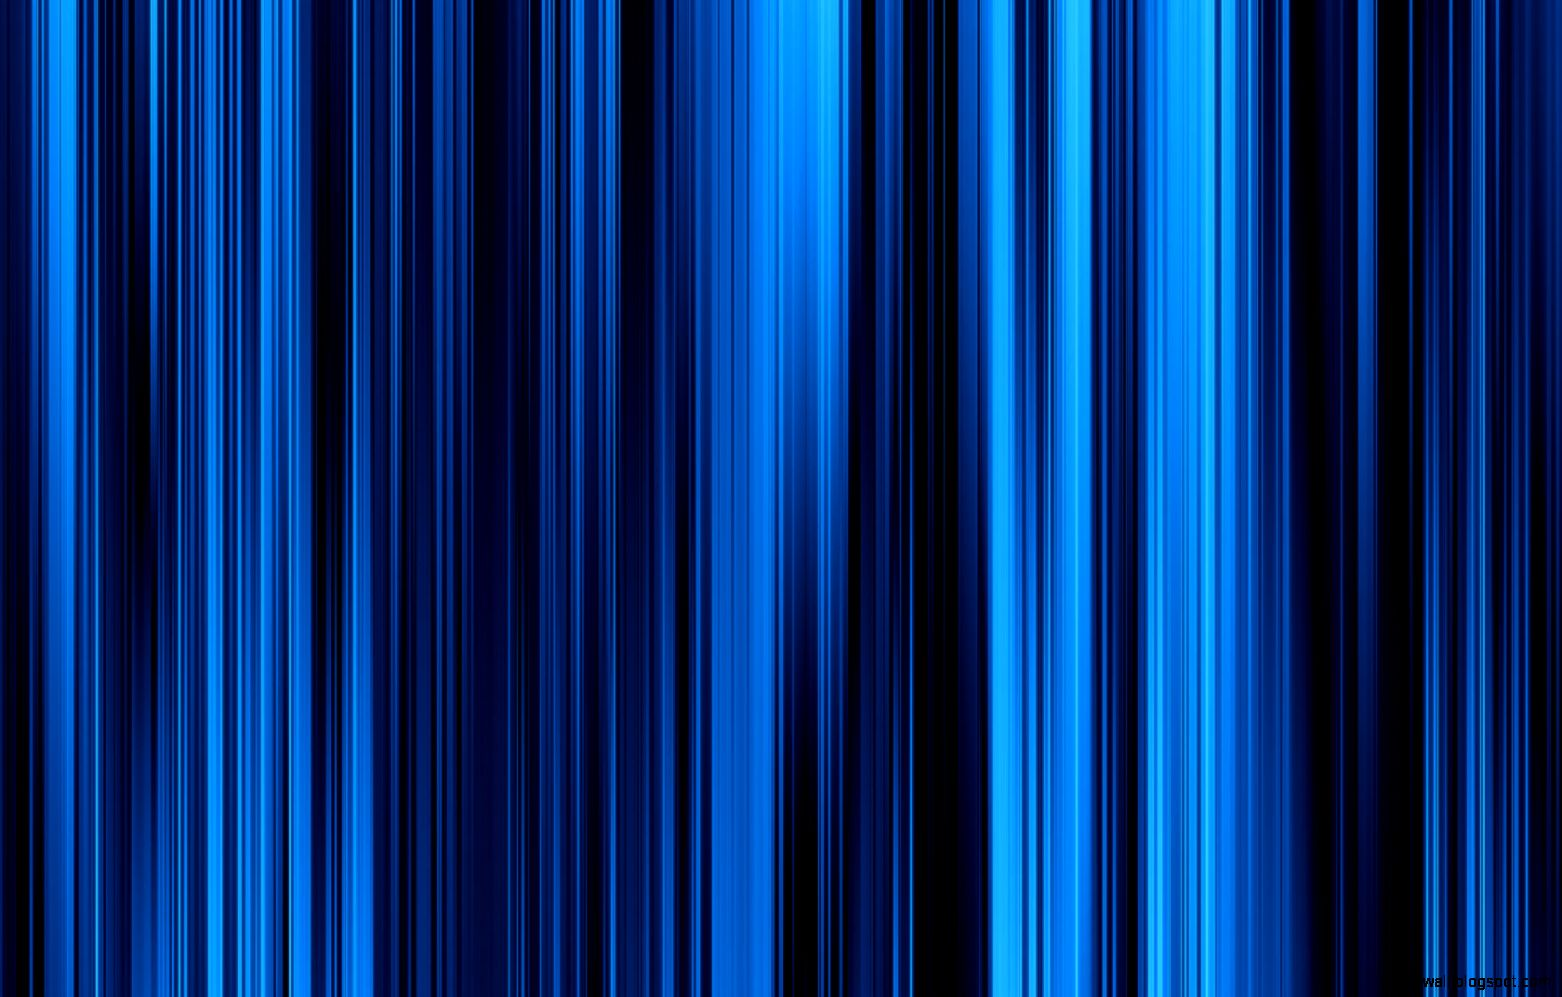 Blue And Yellow Striped Wallpaper: Blue Striped Wallpaper